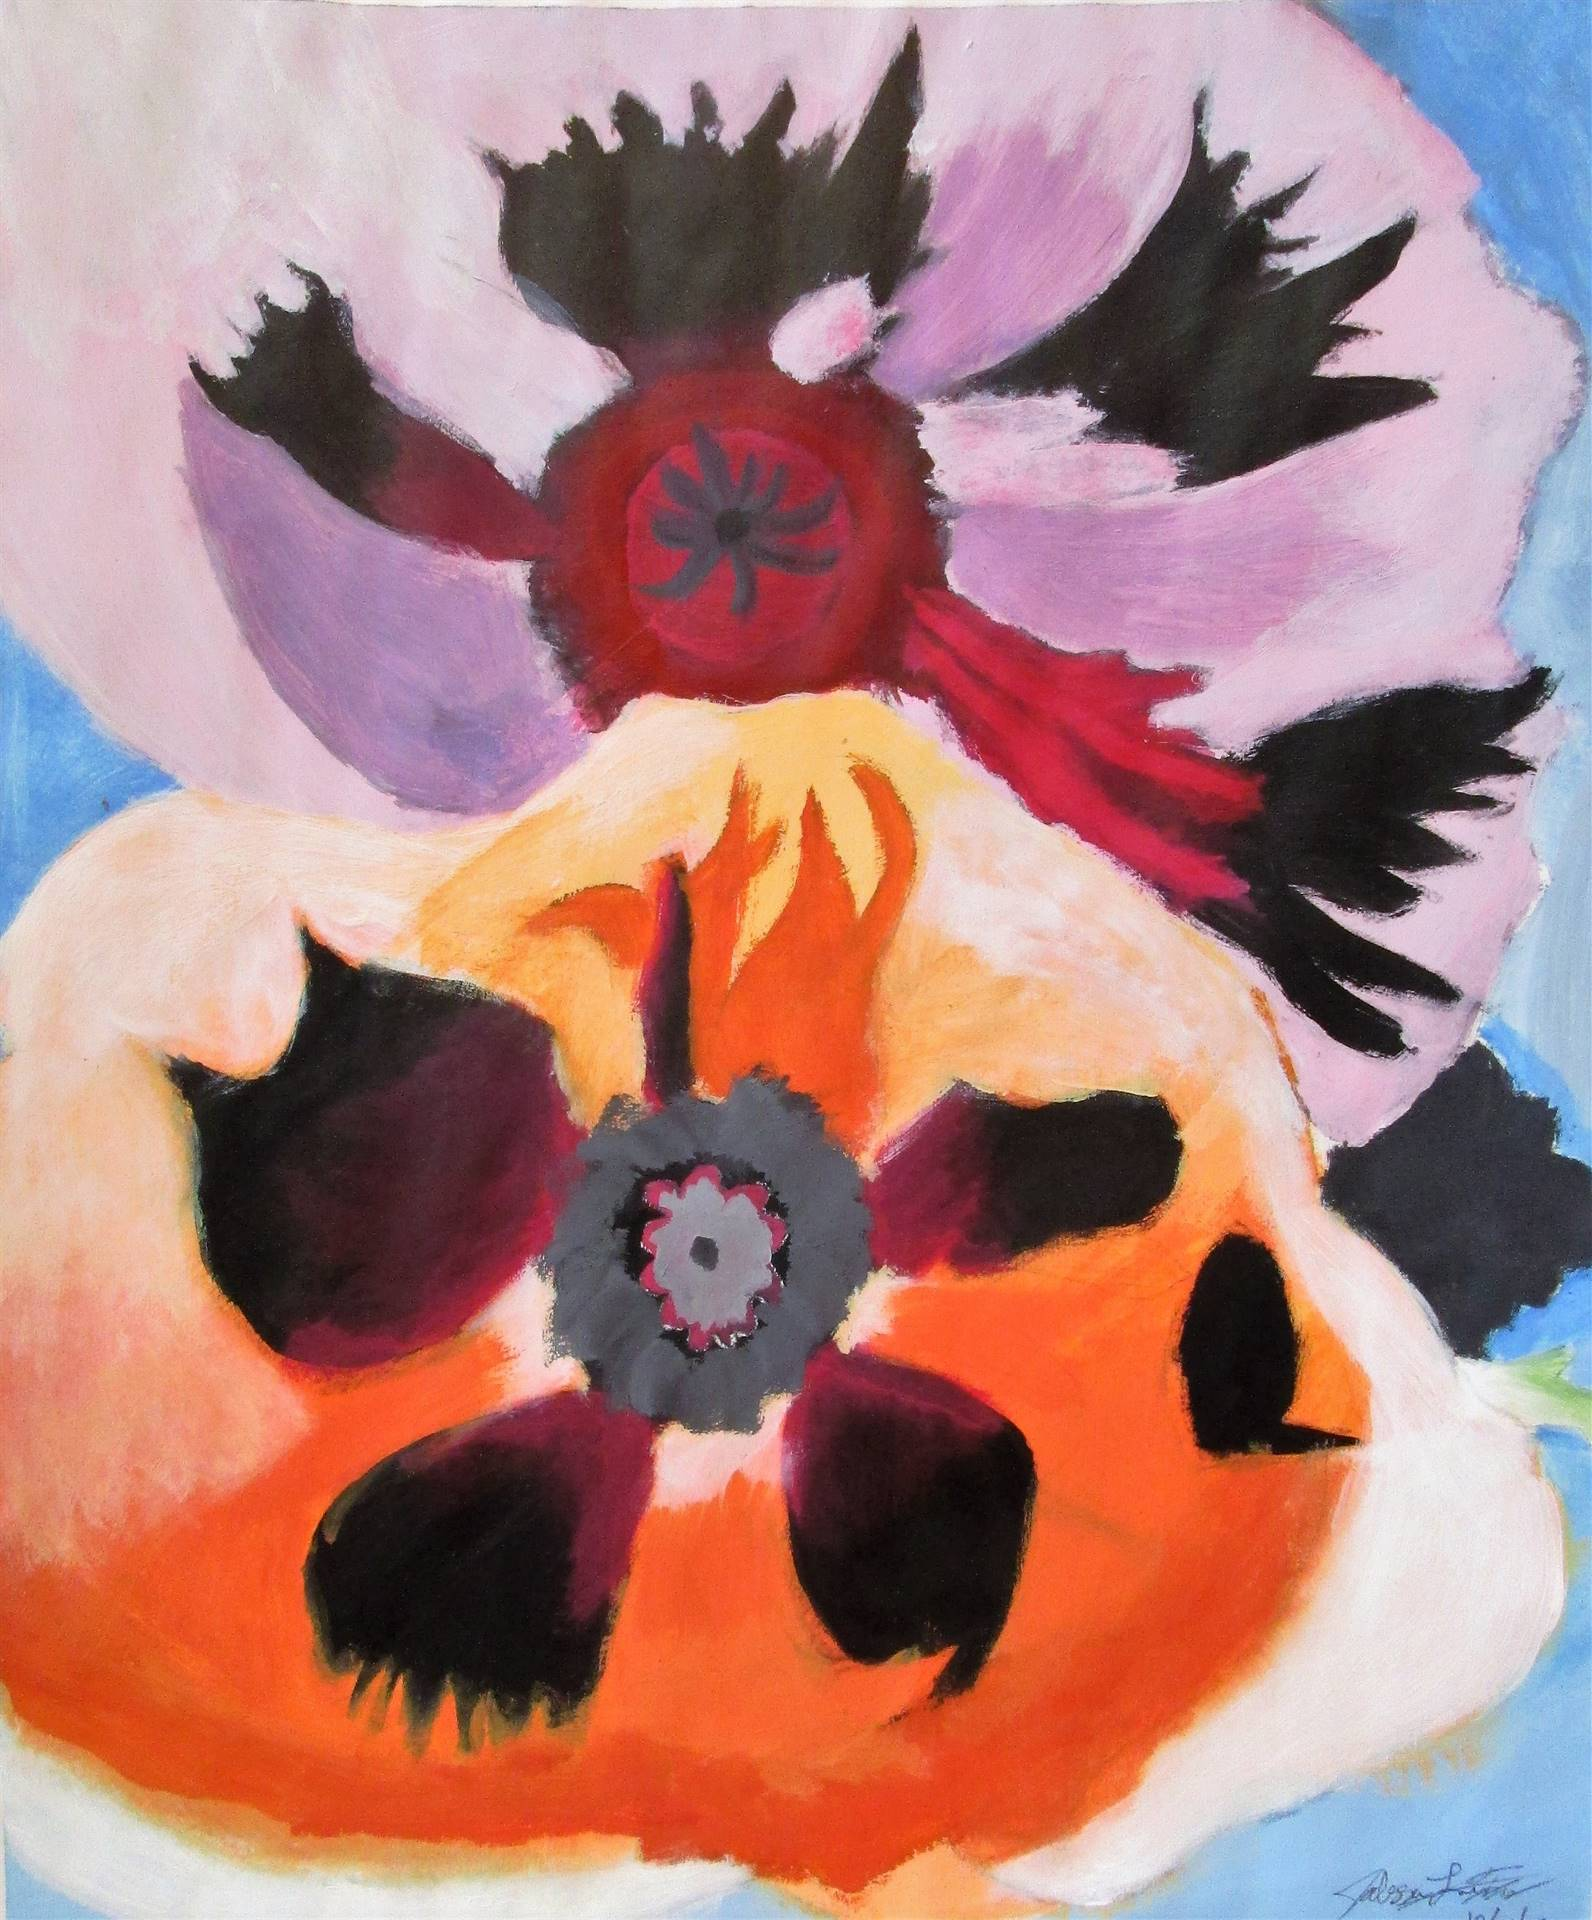 Image of student artwork based on the artist Georgia O'Keefe.